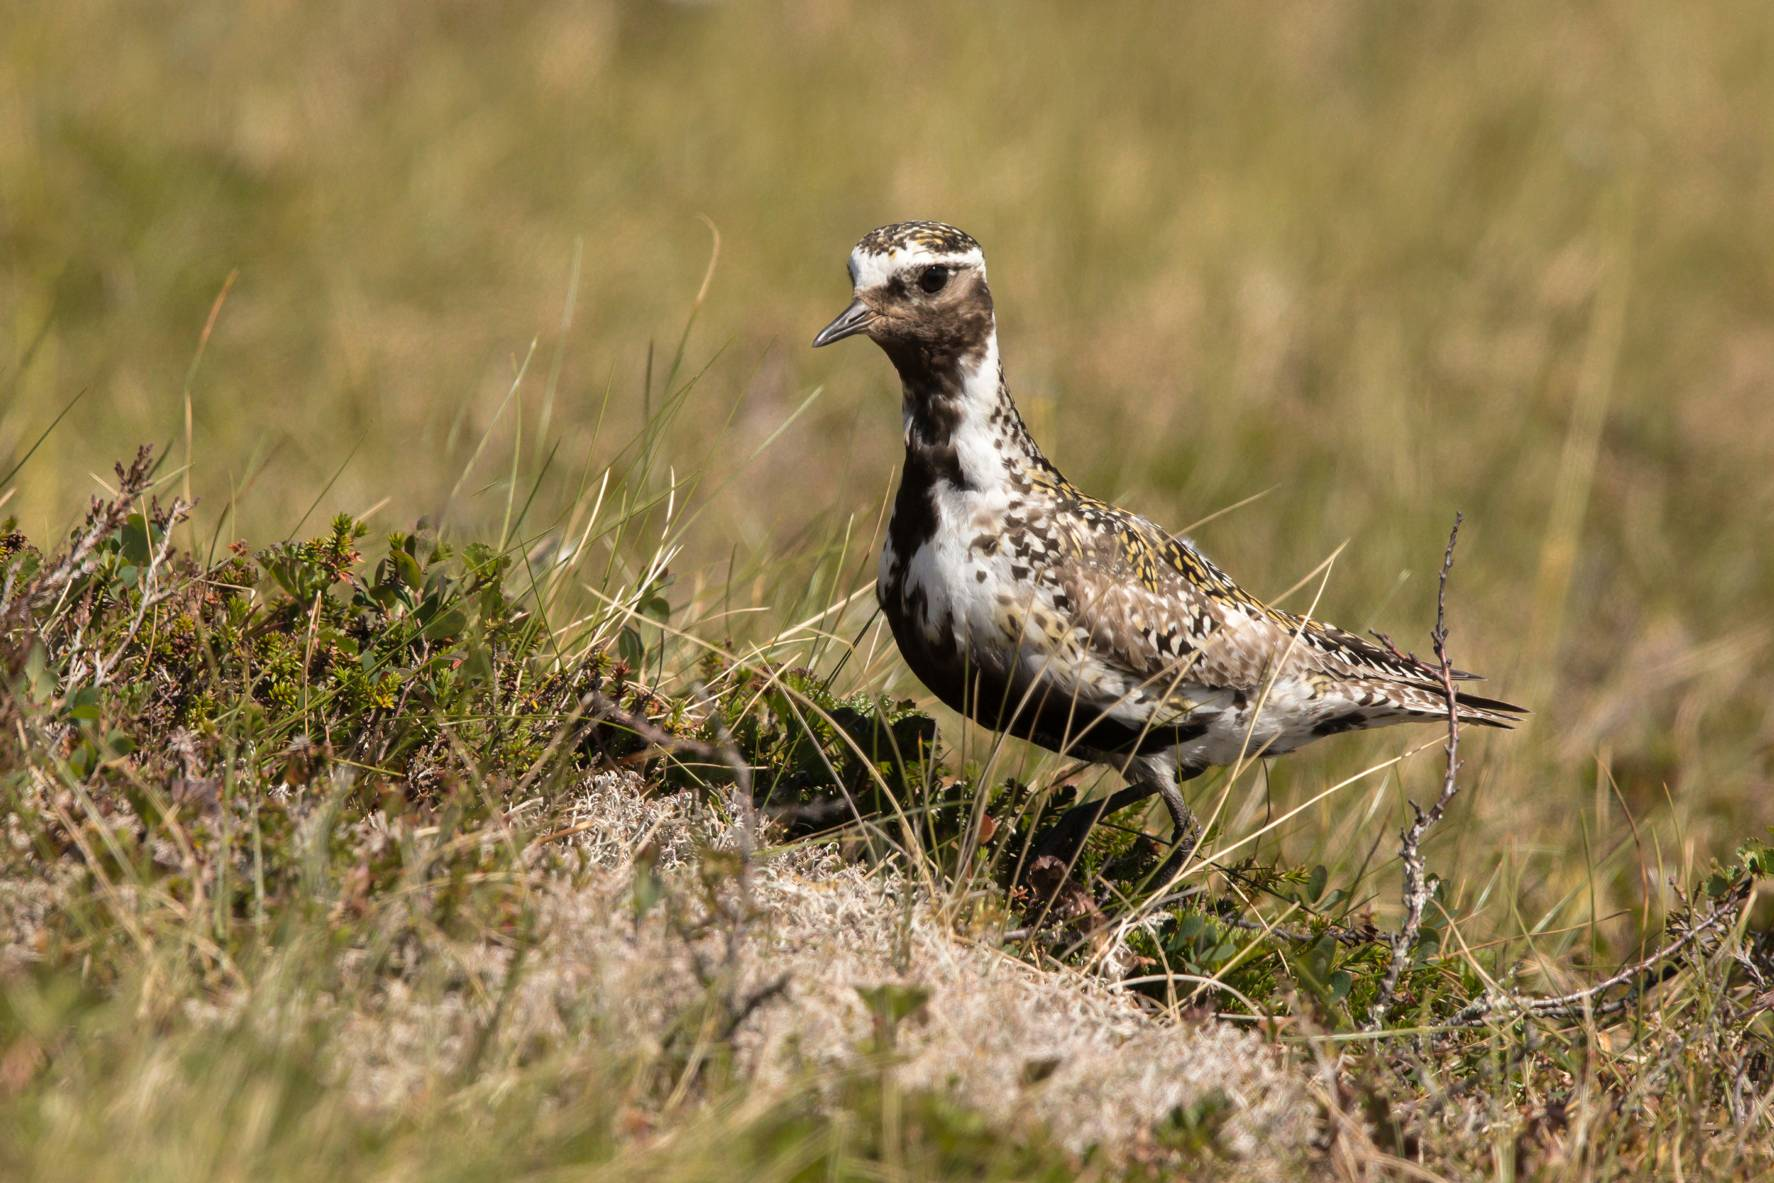 # 375 Goldregenpfeifer am Nest